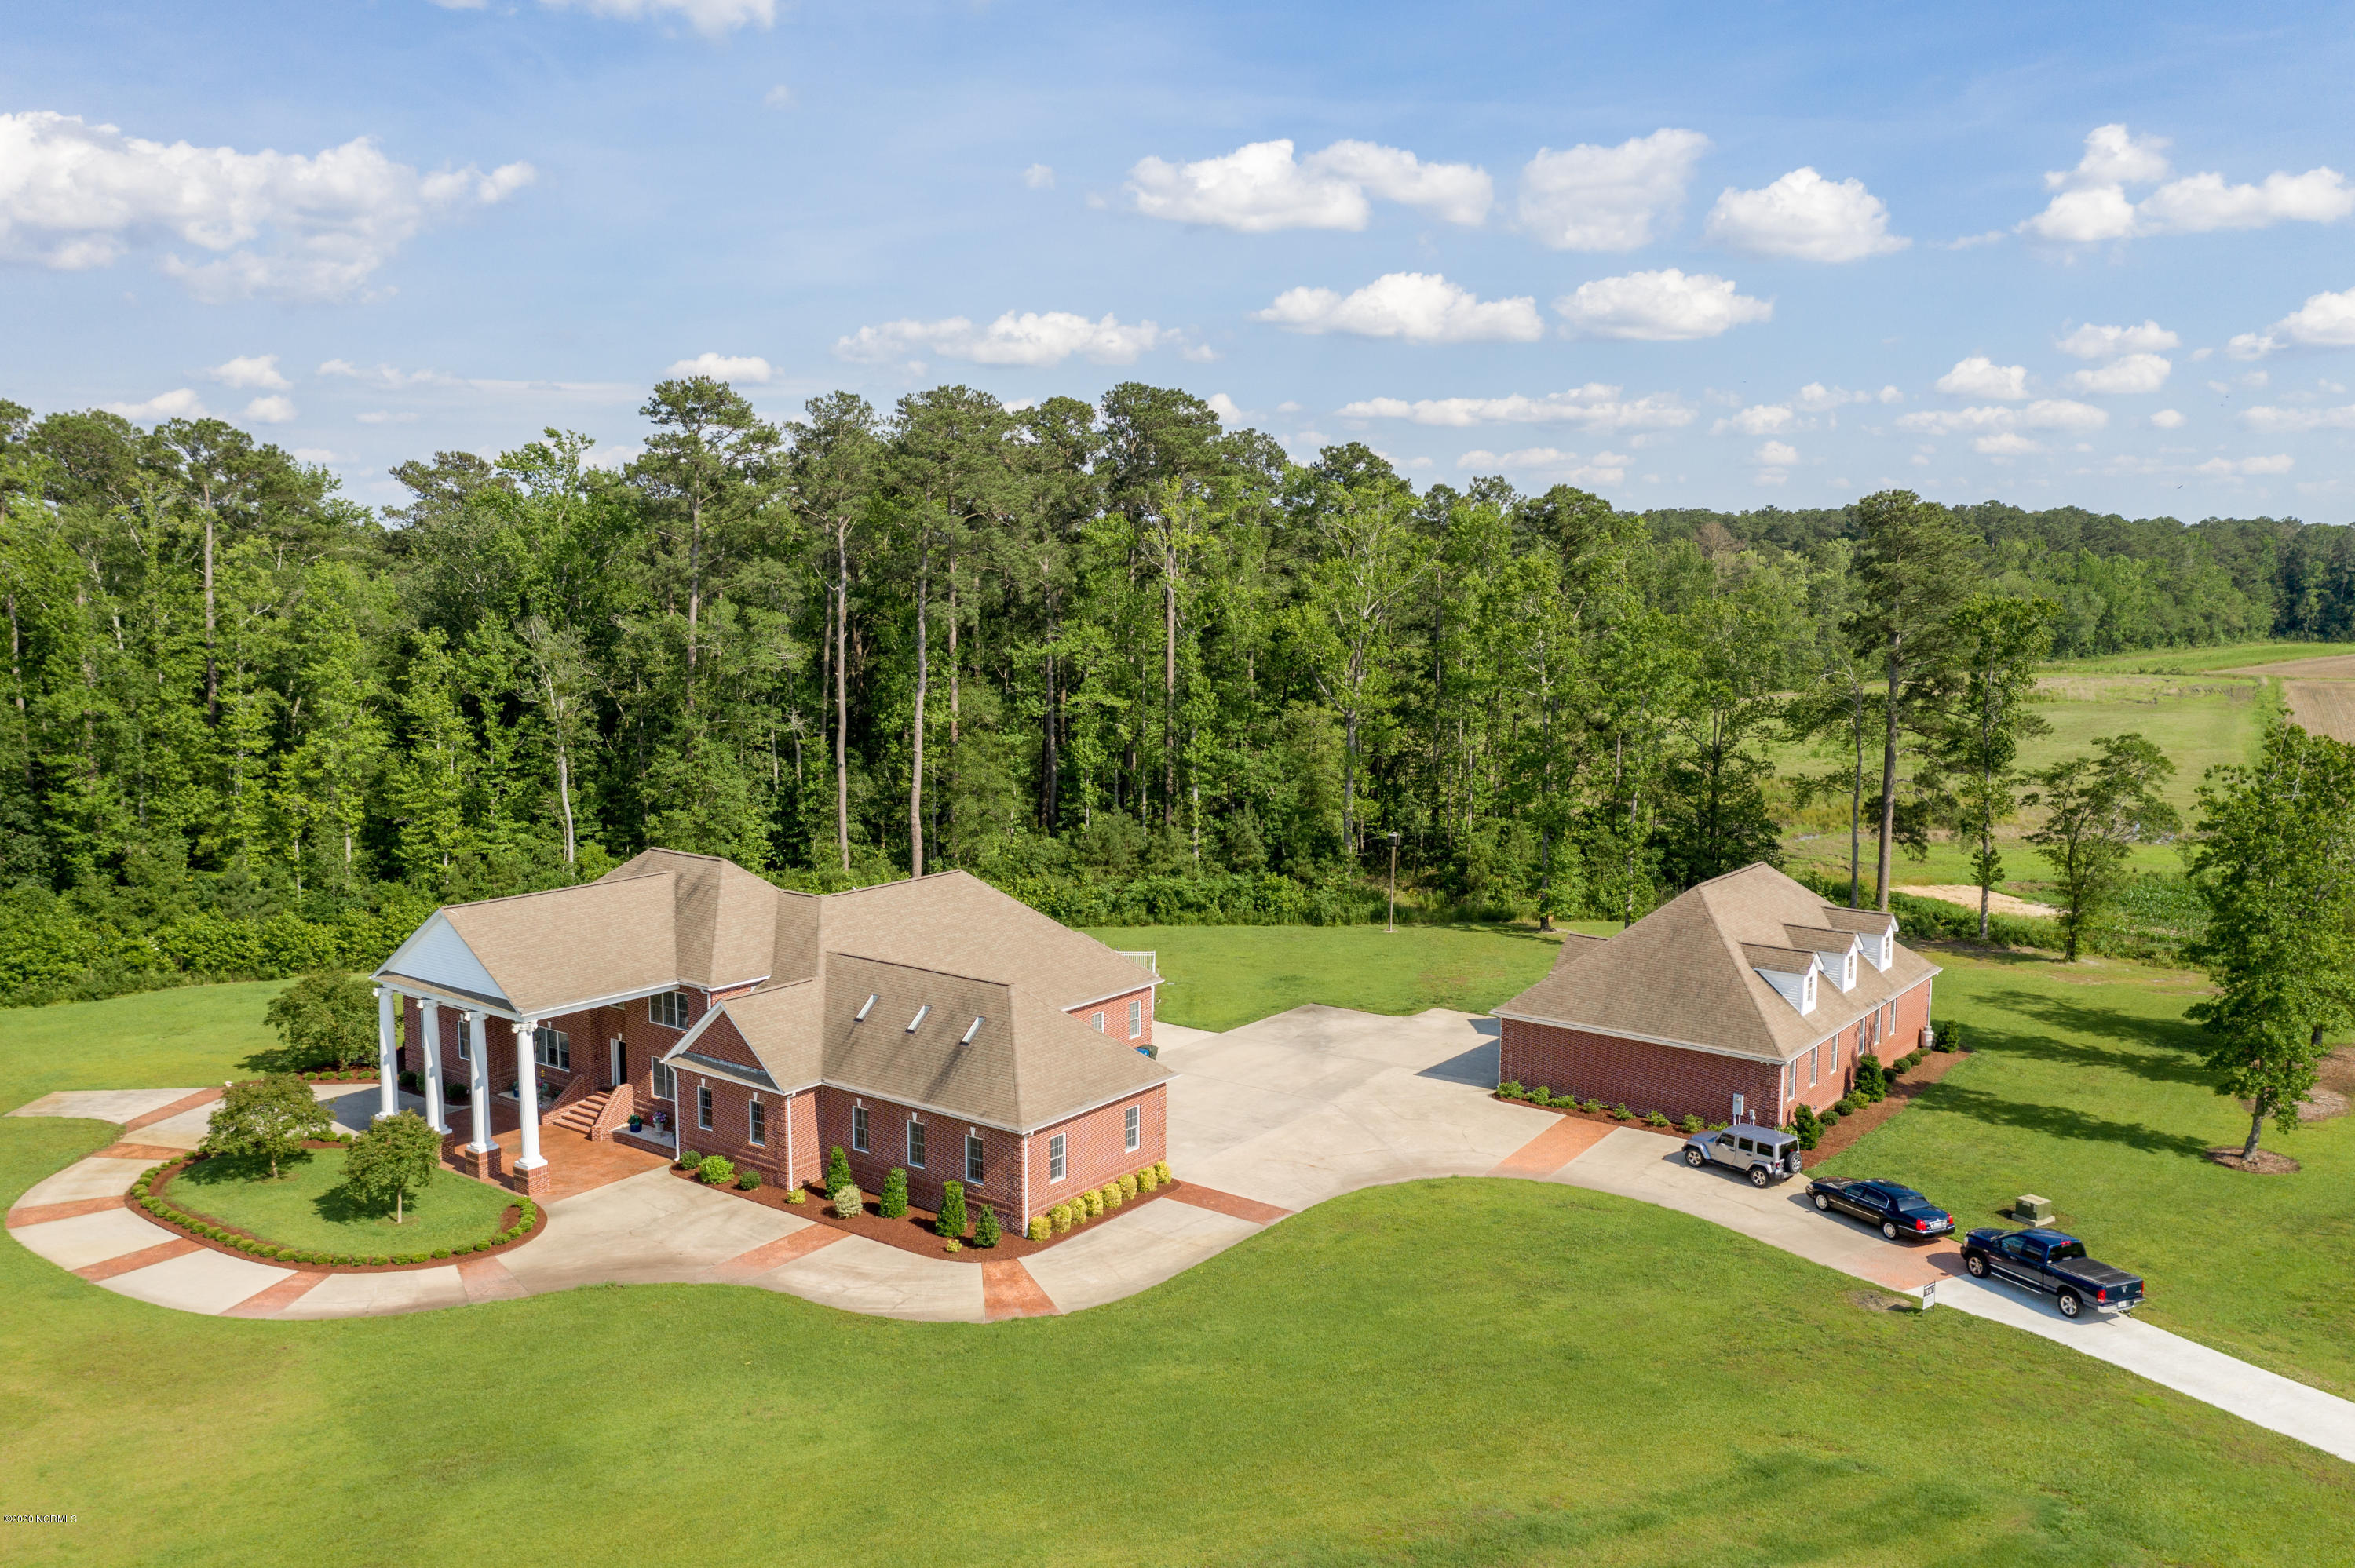 1643 Tull Road, Greenville, North Carolina 27858, 6 Bedrooms Bedrooms, ,5 BathroomsBathrooms,Residential,For Sale,Tull,100218879